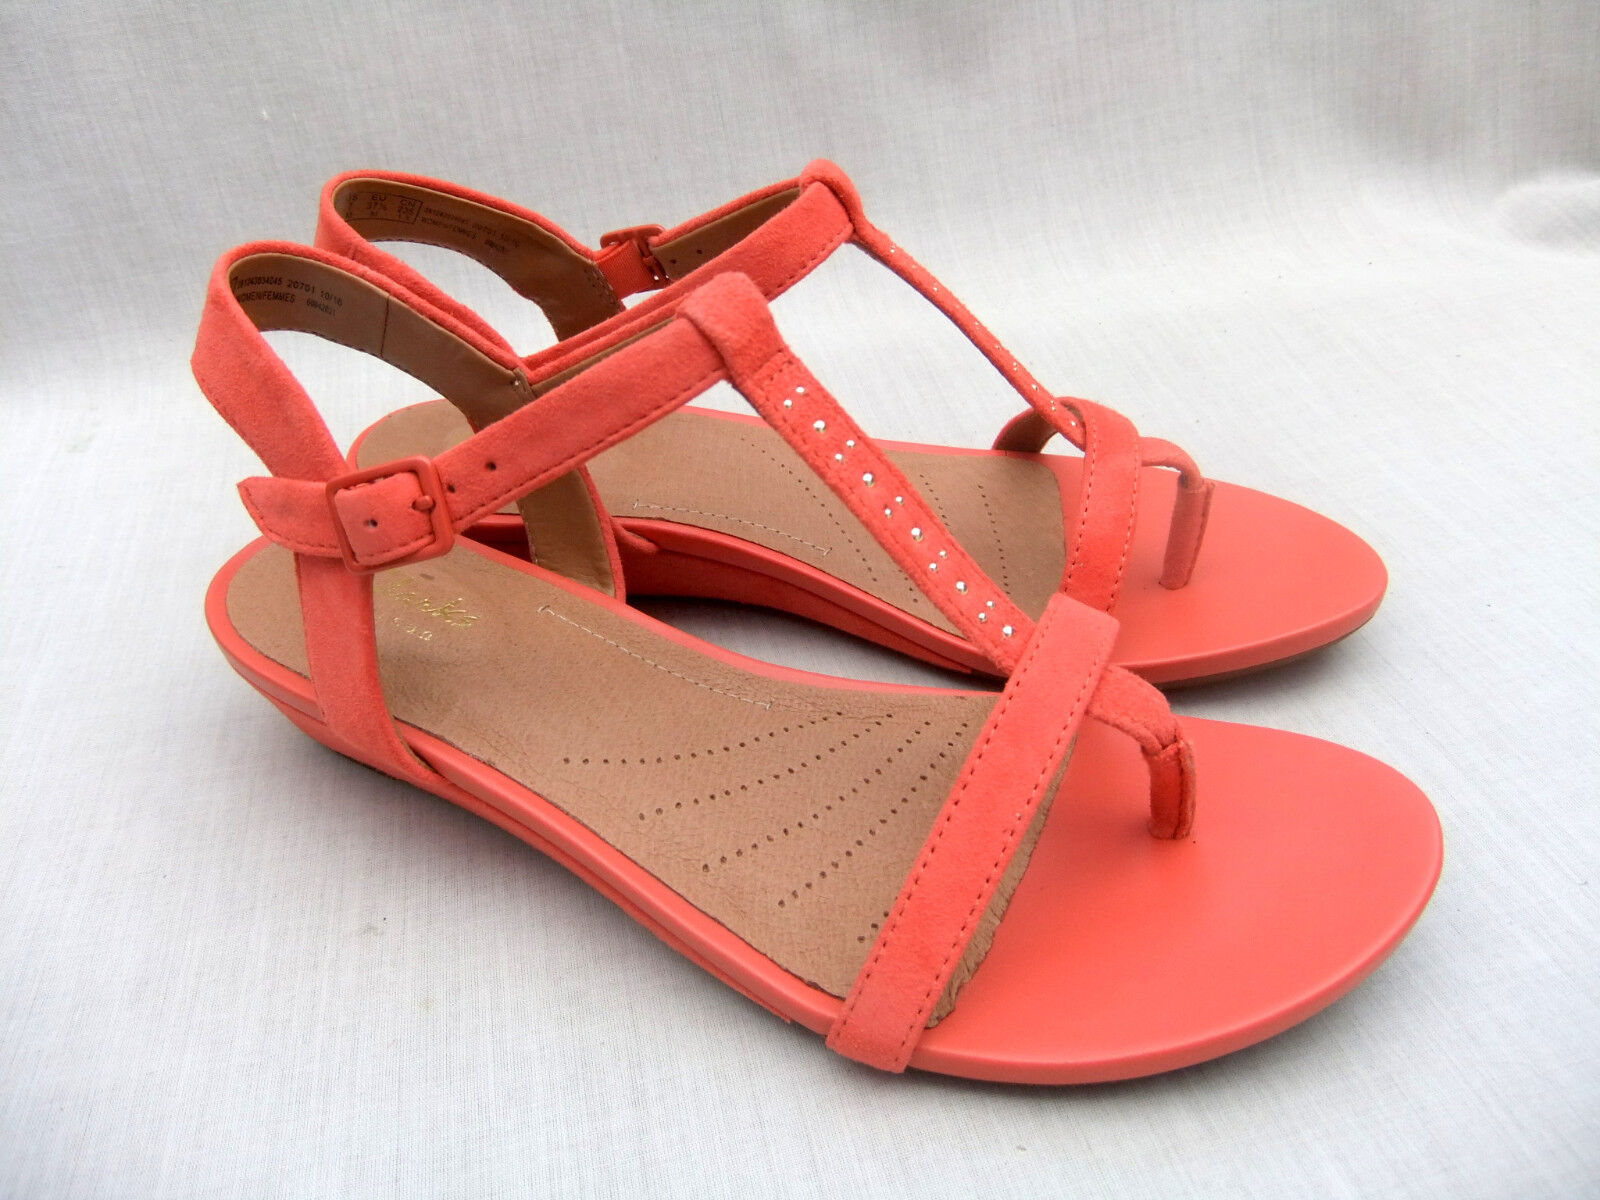 NEW CLARKS CORAL PARRAM BLANC WOMENS CORAL CLARKS SUEDE WEDGE SANDALS 3f306b